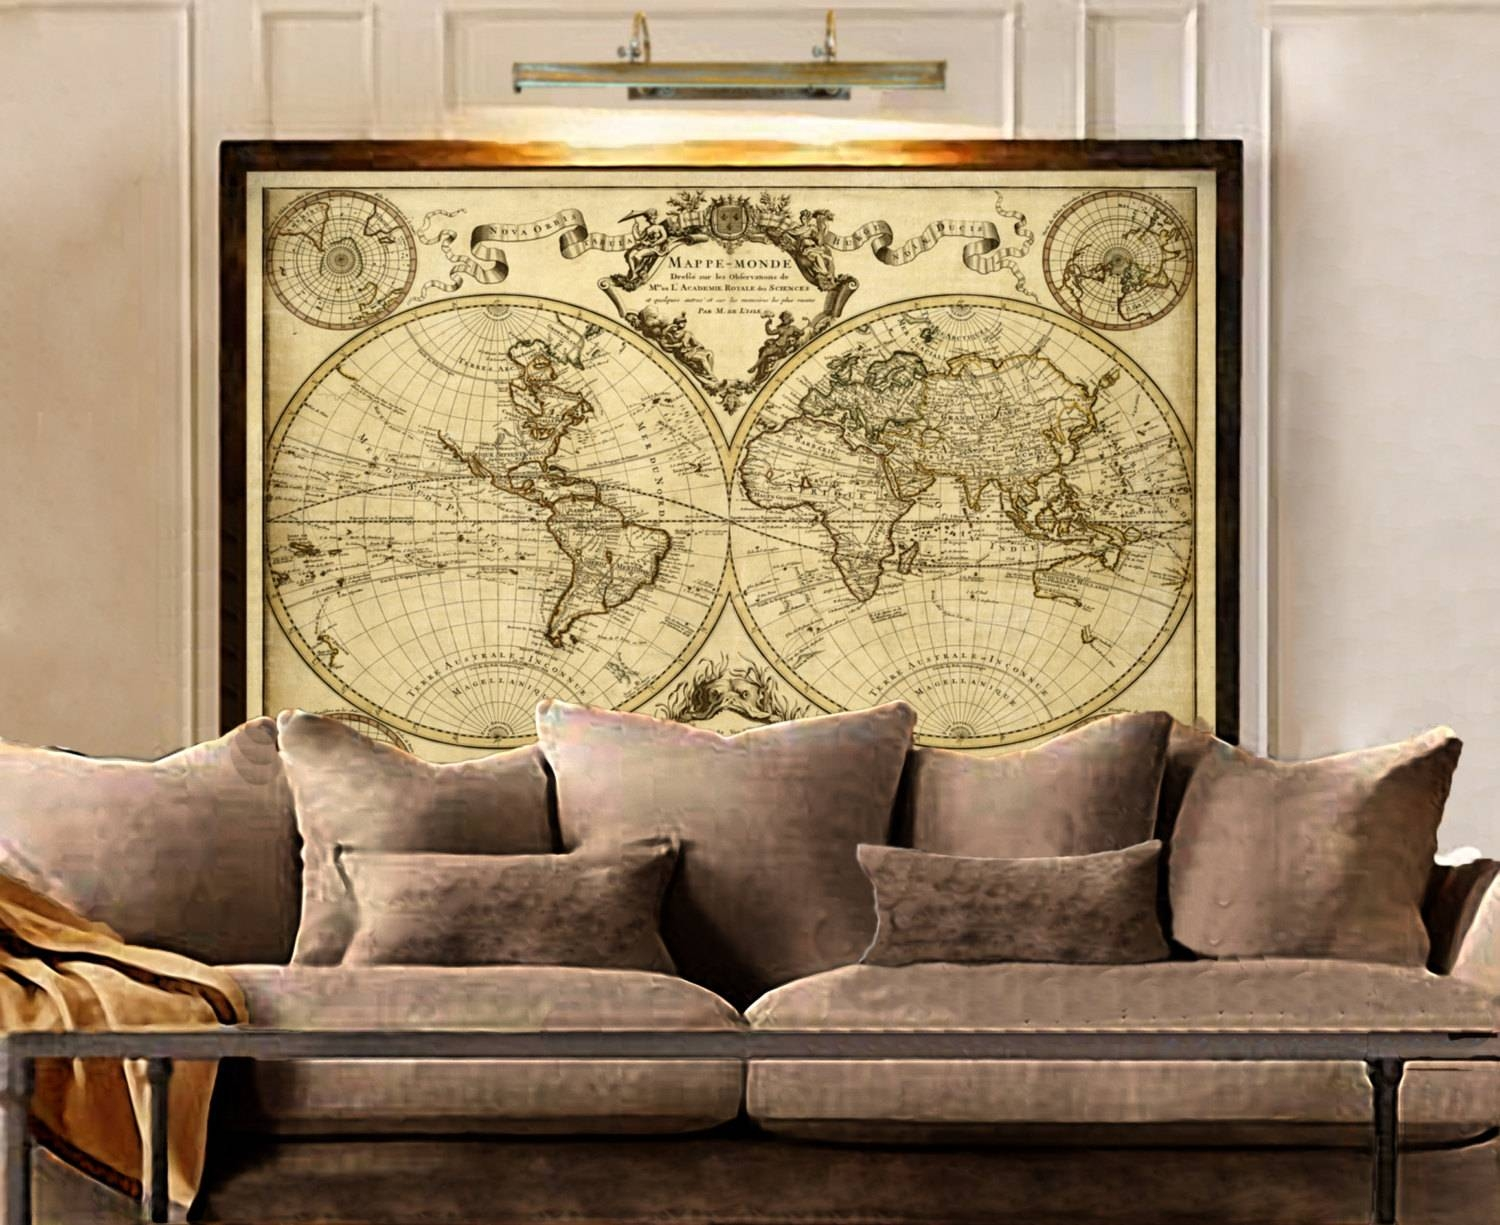 L'isle's 1720 Old World Map Historic Map Antique Style Pertaining To Current Old Map Wall Art (View 3 of 20)